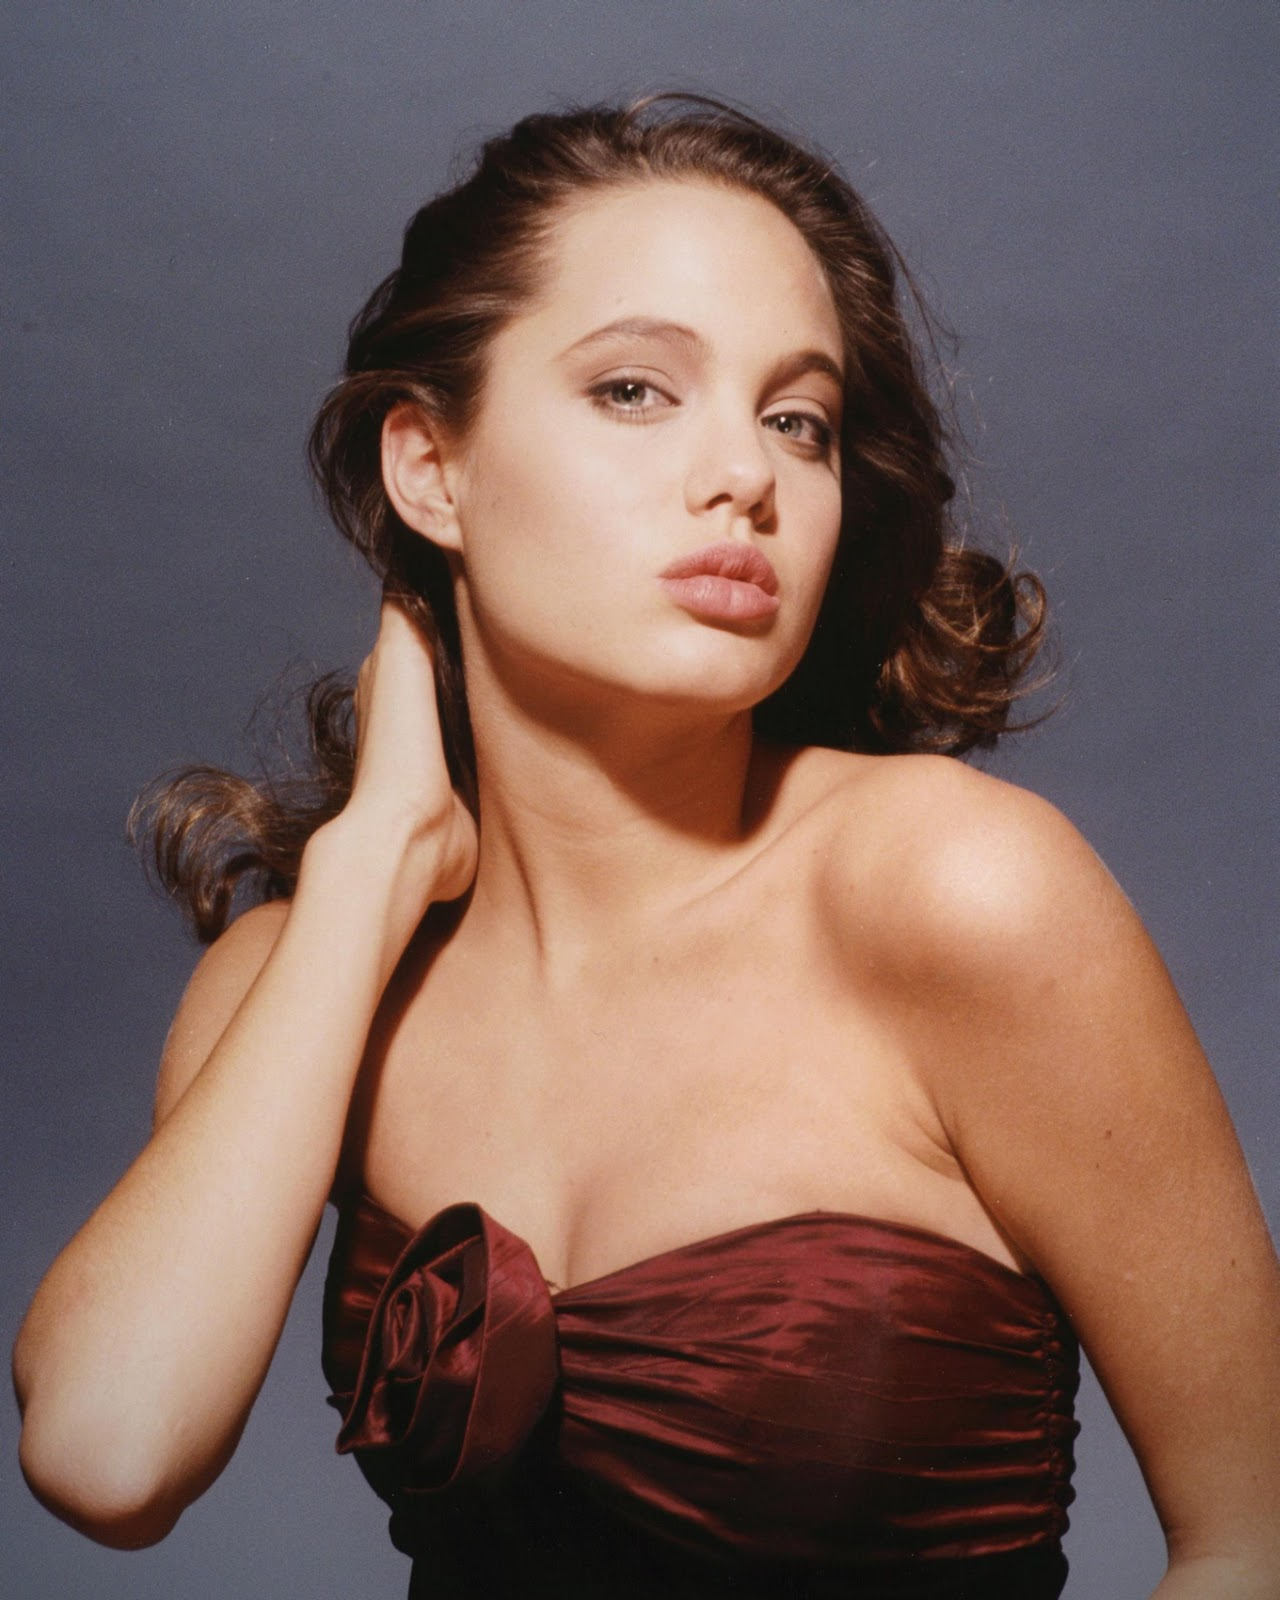 Young Celebrity Photo Gallery: Young Angelina Jolie Photos